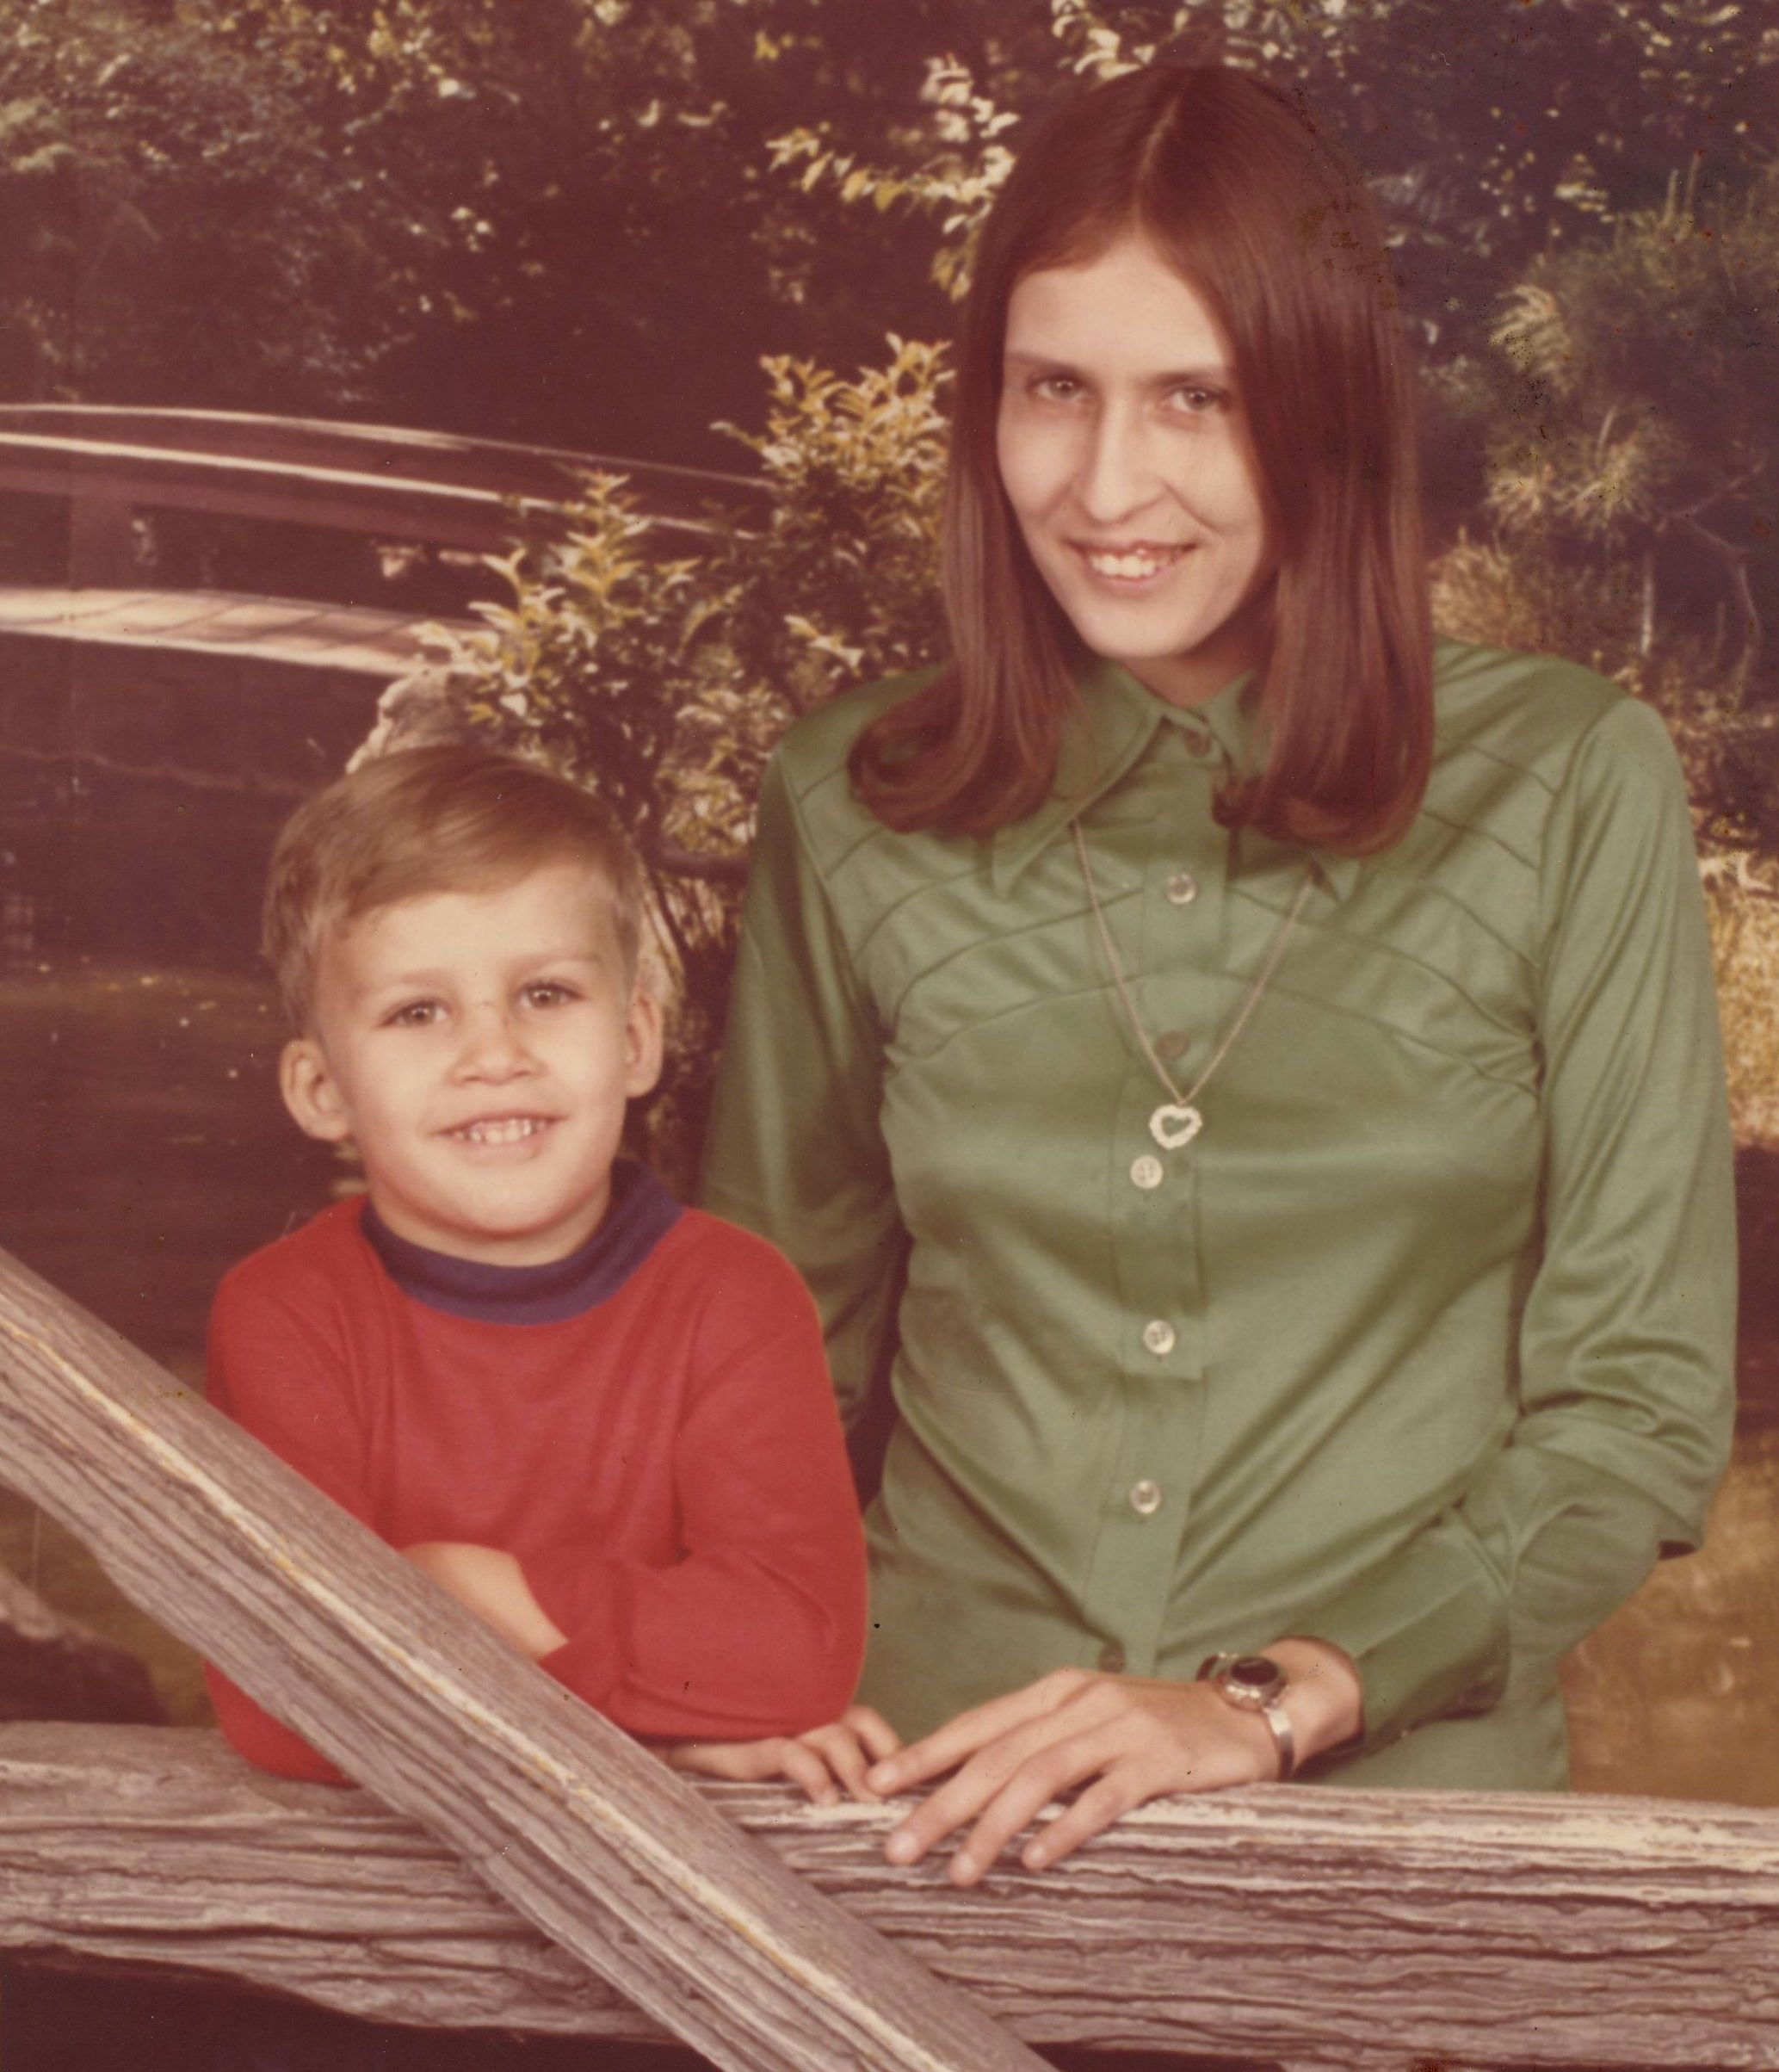 Me and my Mom. 4 months before me getting burned 78% of my body!